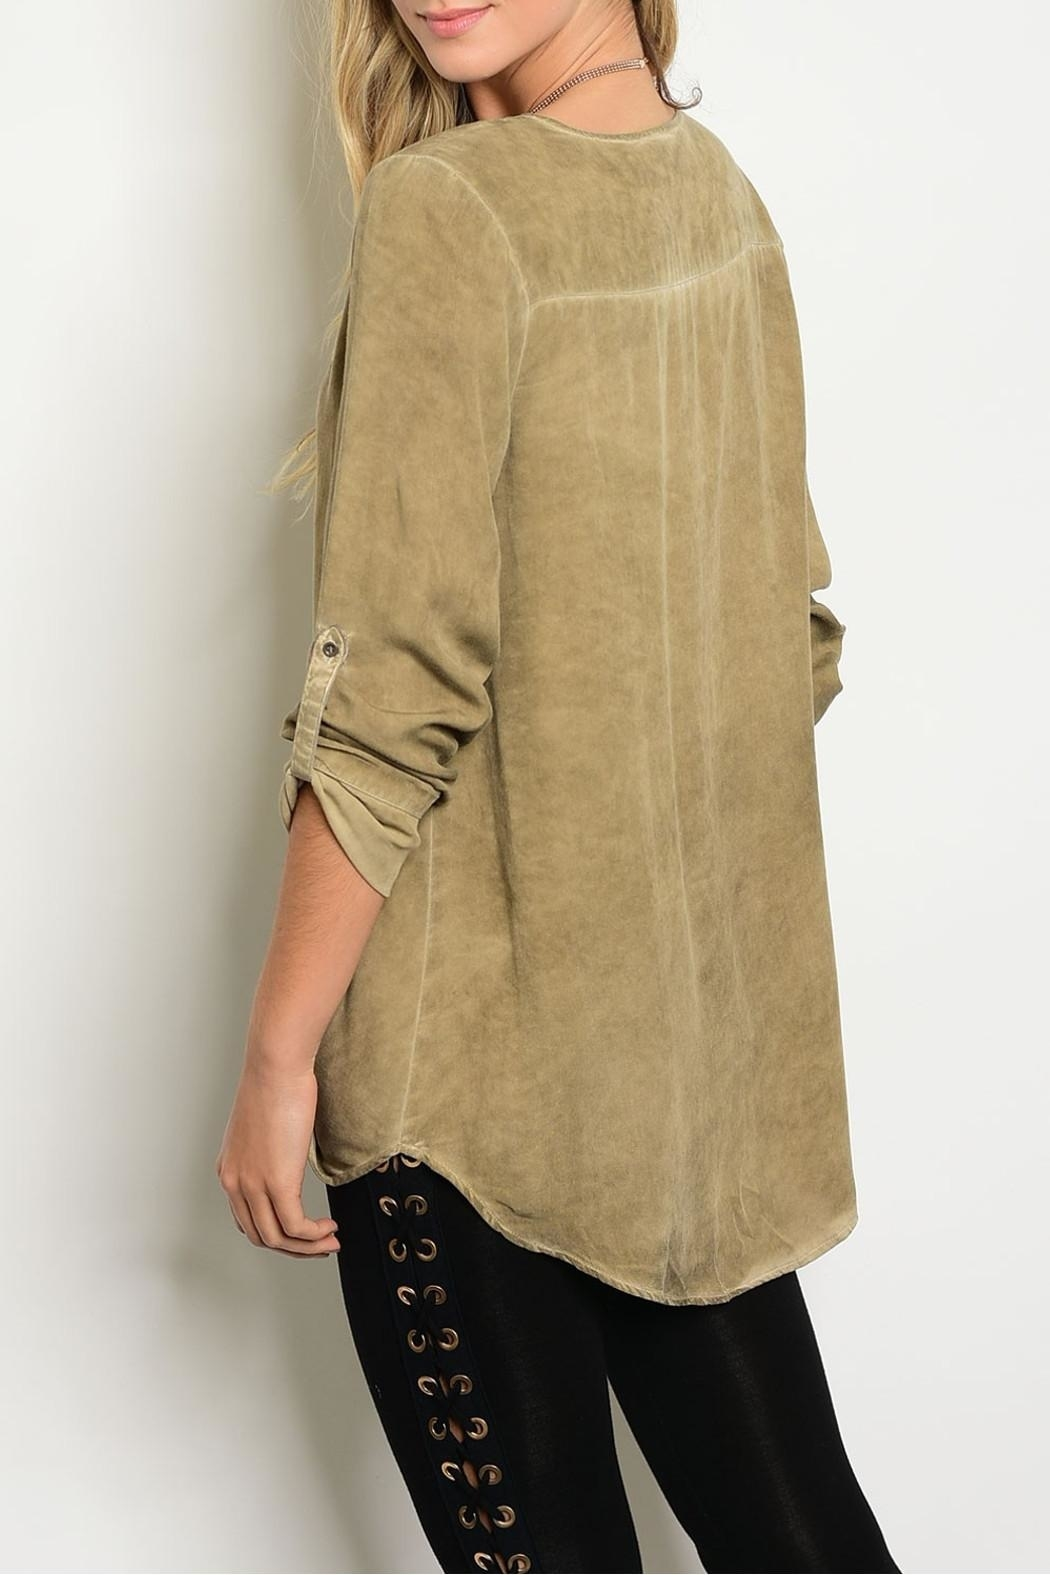 LoveRiche Acid Taupe Blouse - Front Full Image